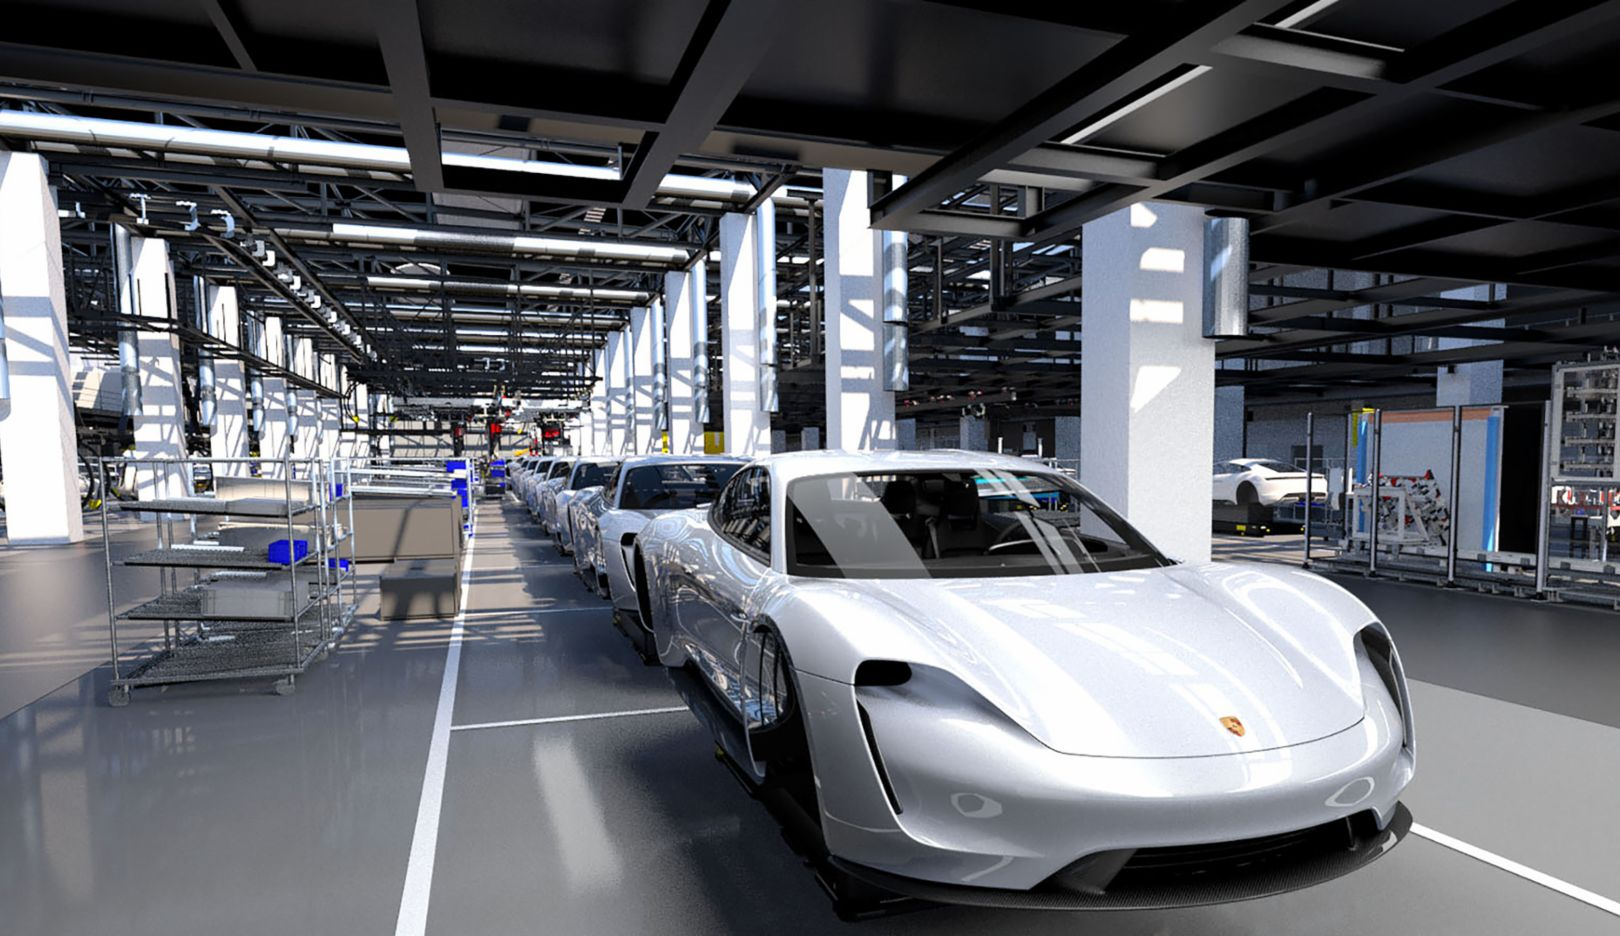 Insights into Porsche production 4.0, 2018, Porsche AG